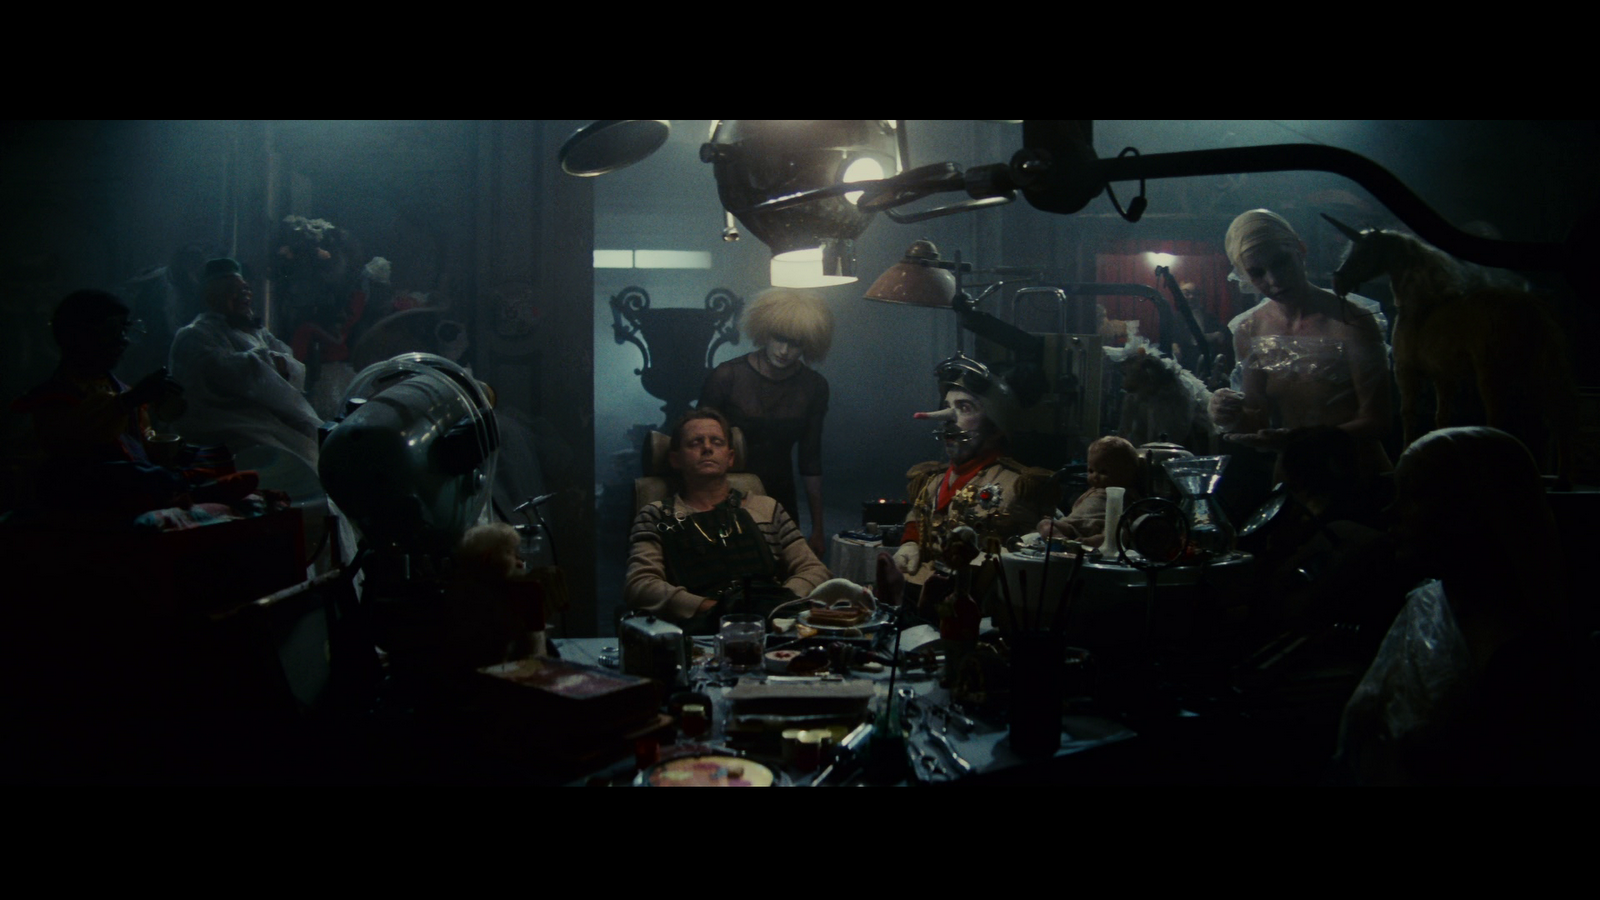 Gimme More Bananas: Blade Runner - photo#29